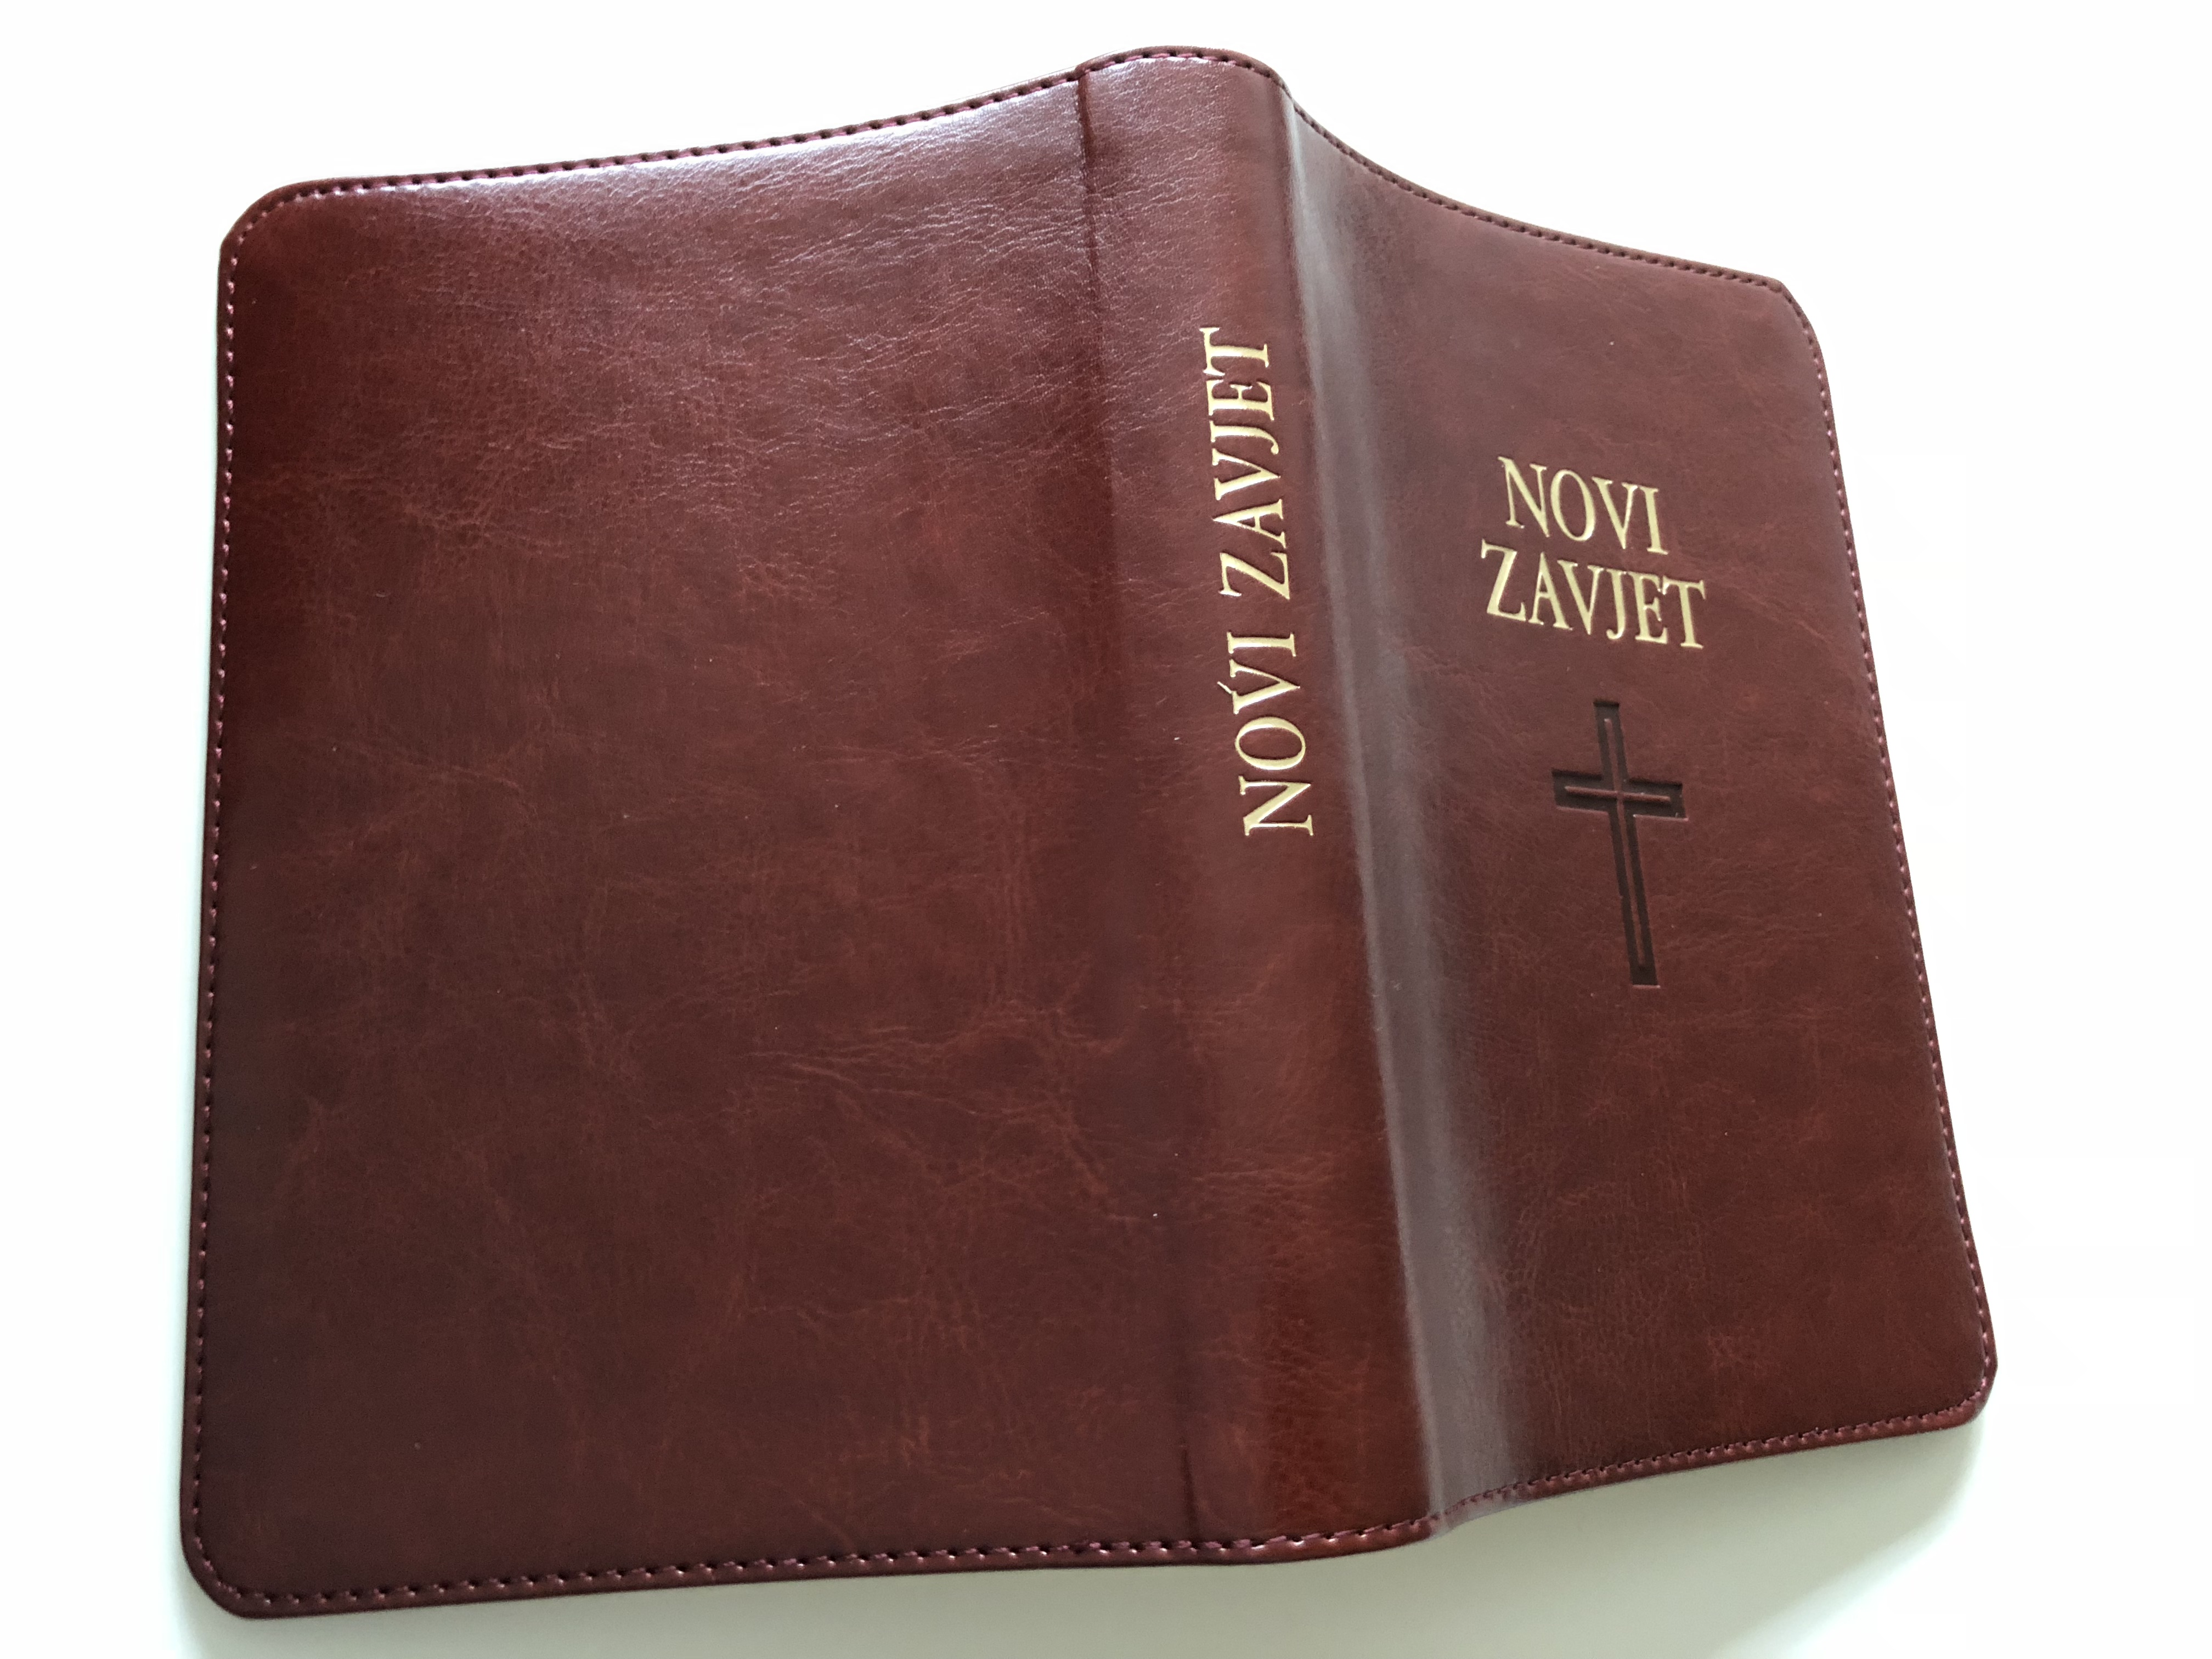 novi-zavjet-the-new-testament-in-croatian-language-leather-bound-brown-golden-edges-hbd-2017-translated-from-greek-texts-by-lj.-rup-i-17-.jpg